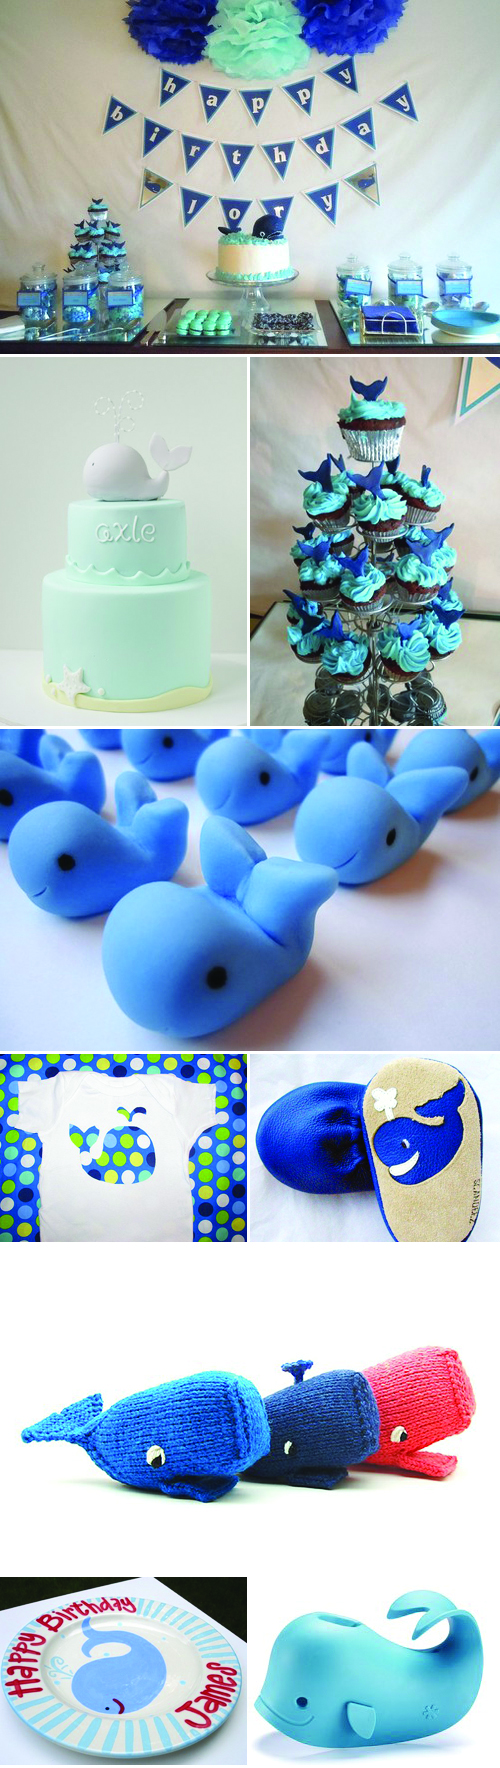 Whale Themed Kid's Party Inspiration